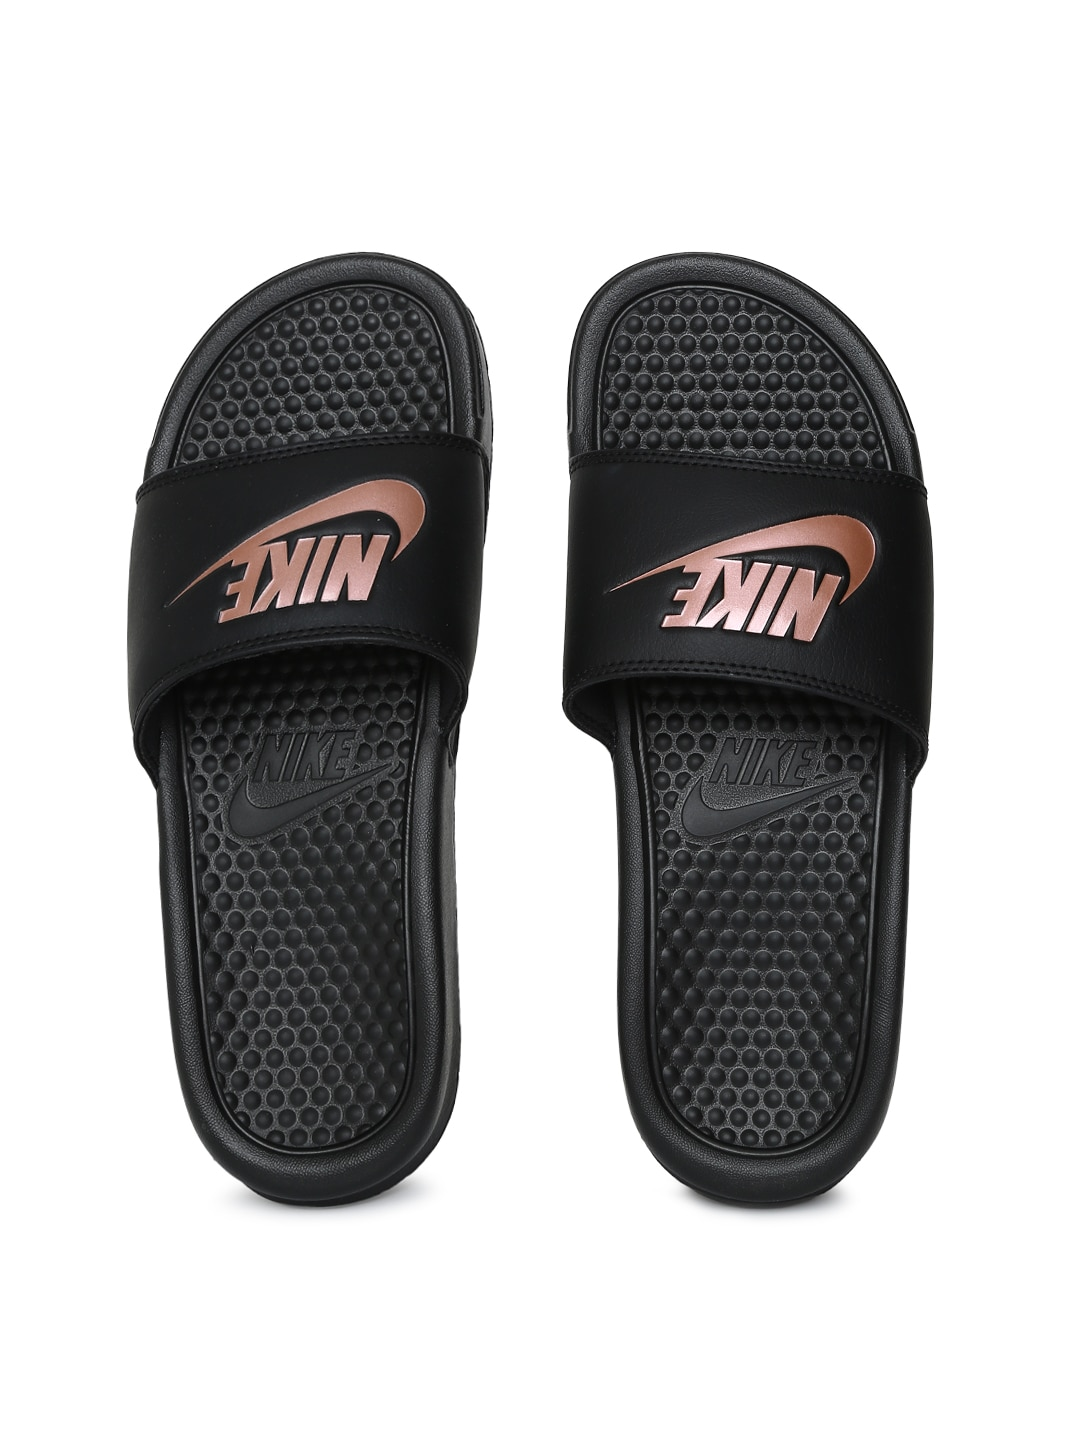 c7efbd58aa5b Nike Flip-Flops - Buy Nike Flip-Flops for Men Women Online